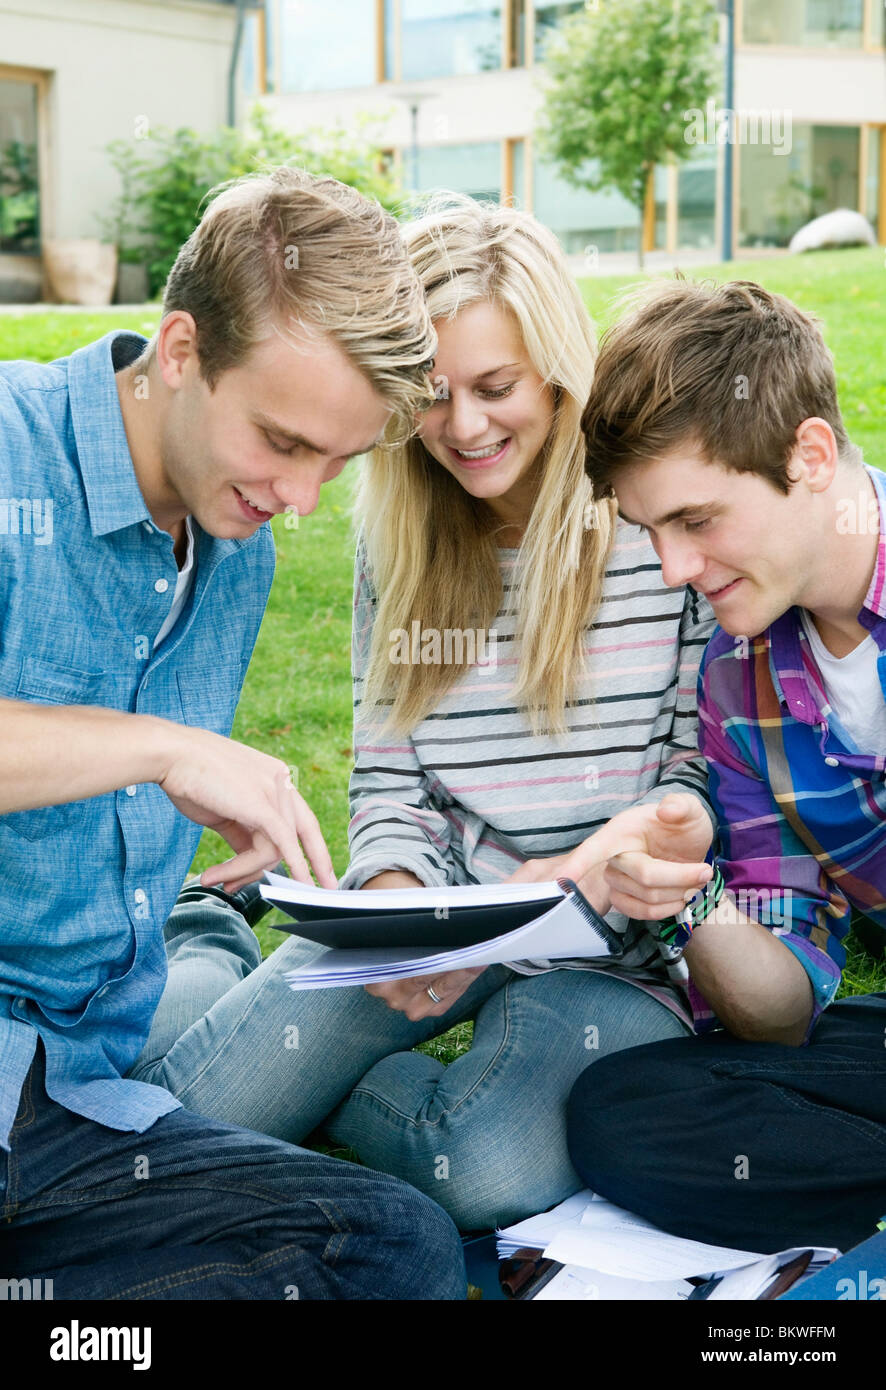 Three concentrated students - Stock Image